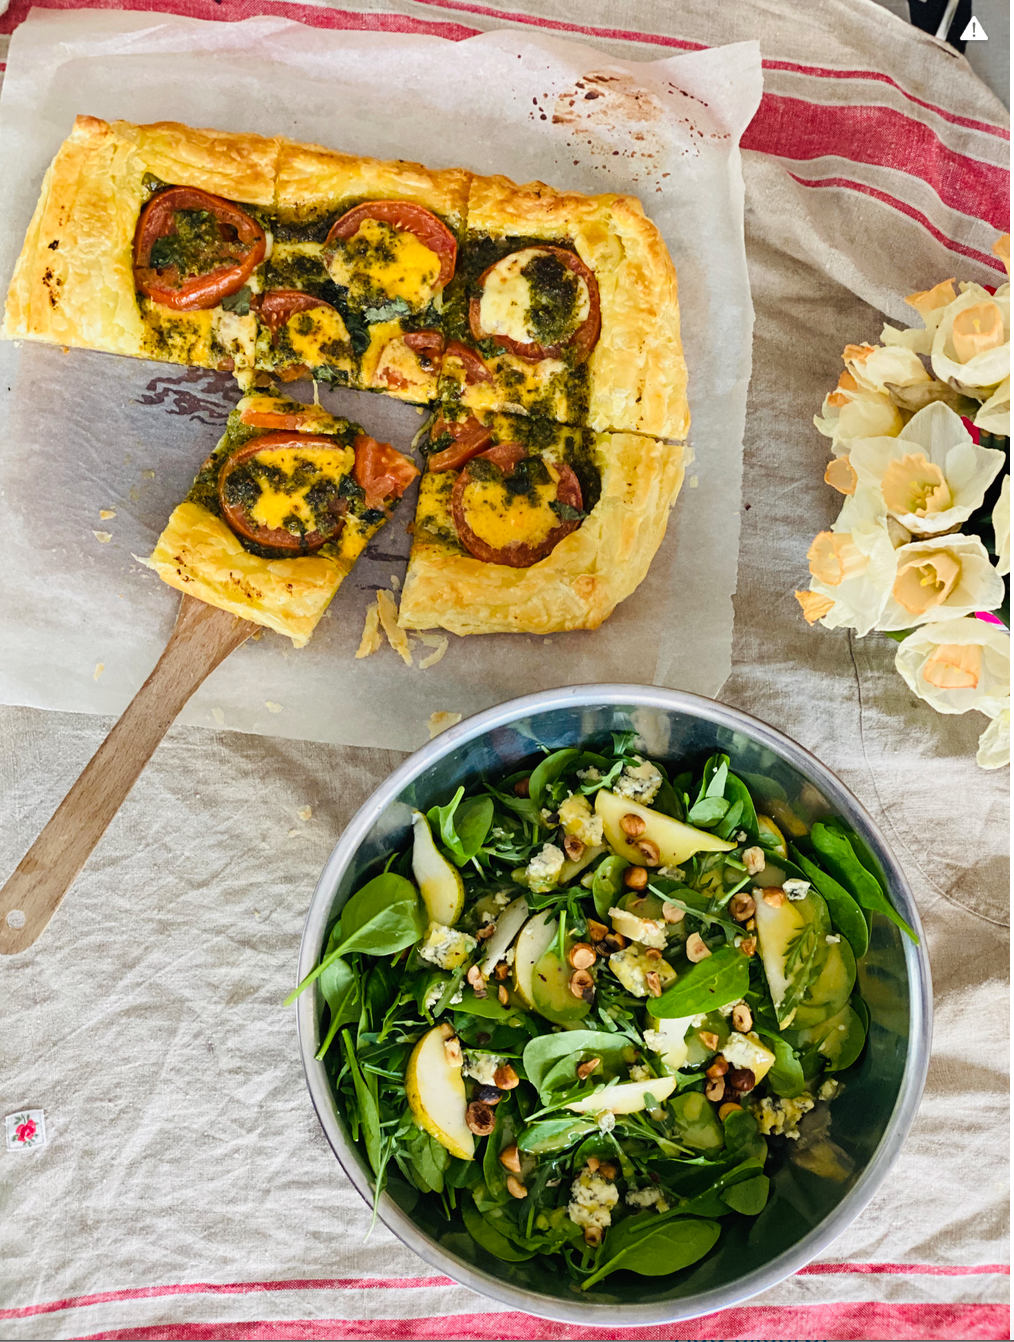 Lazy Lockdown Lunching: Pesto Pizza & Pear, Hazelnut & Spinach Salad